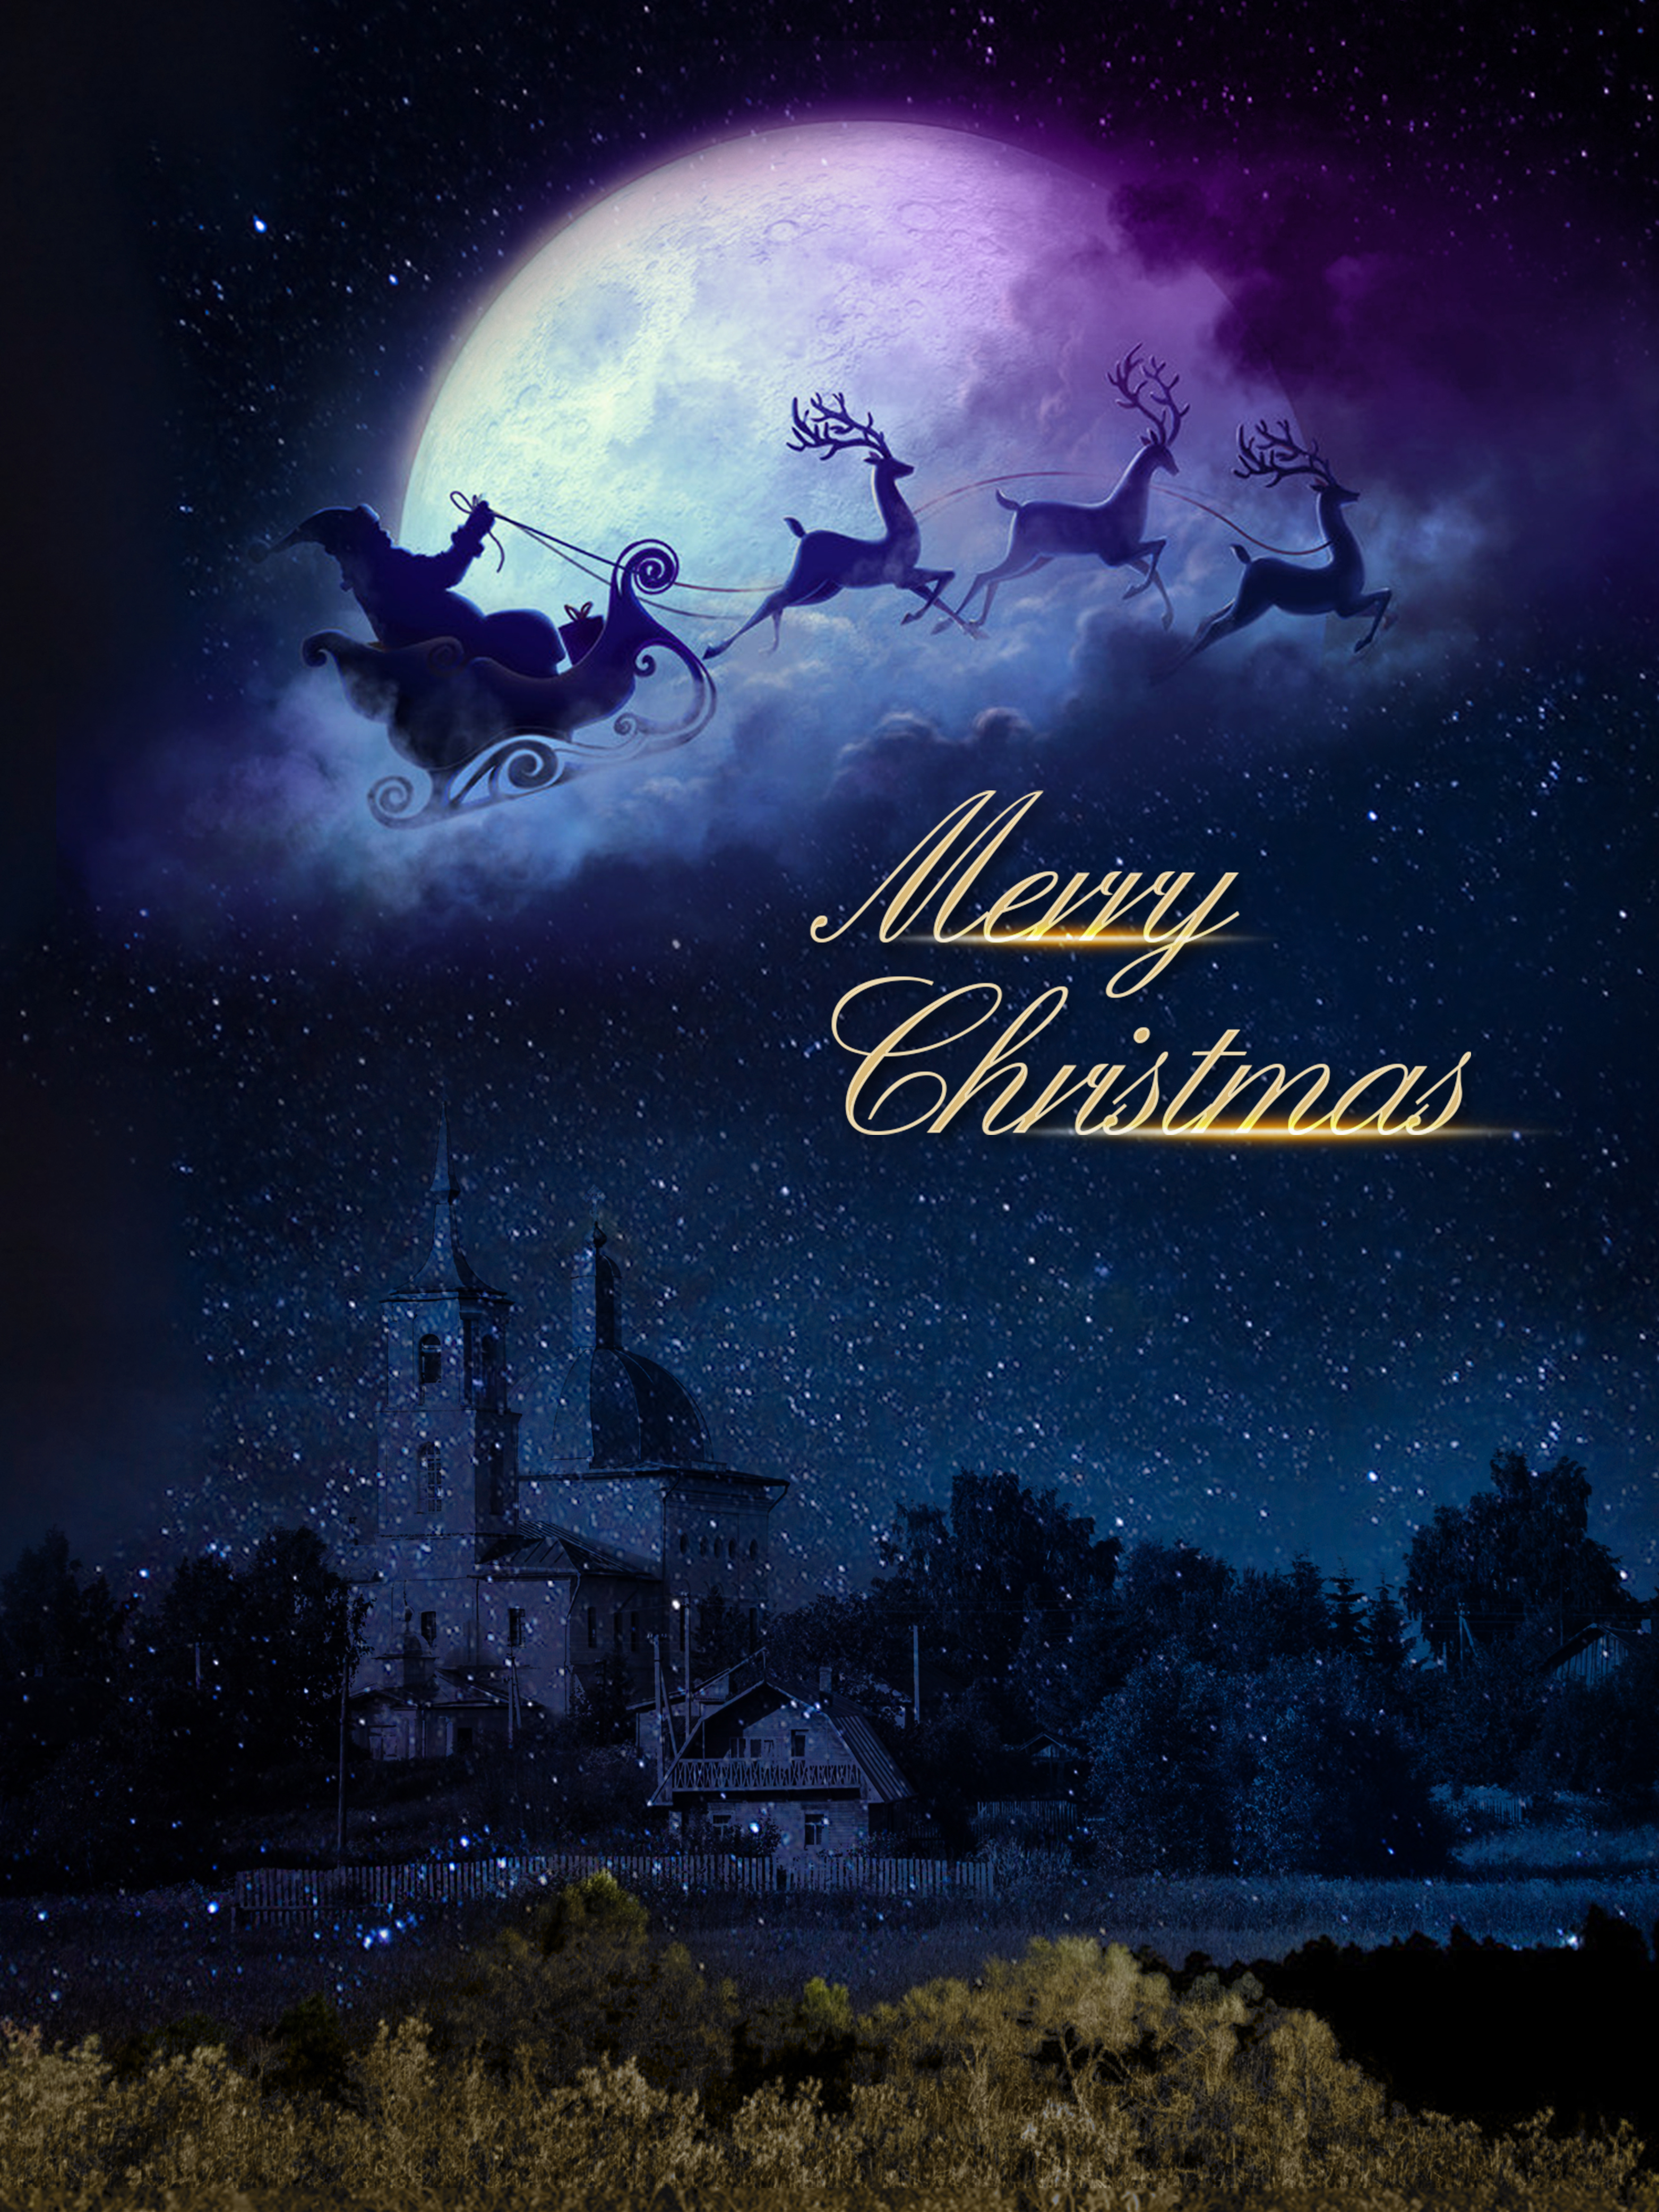 christmas fantasy poster background template  christmas  dream  poster background image for free